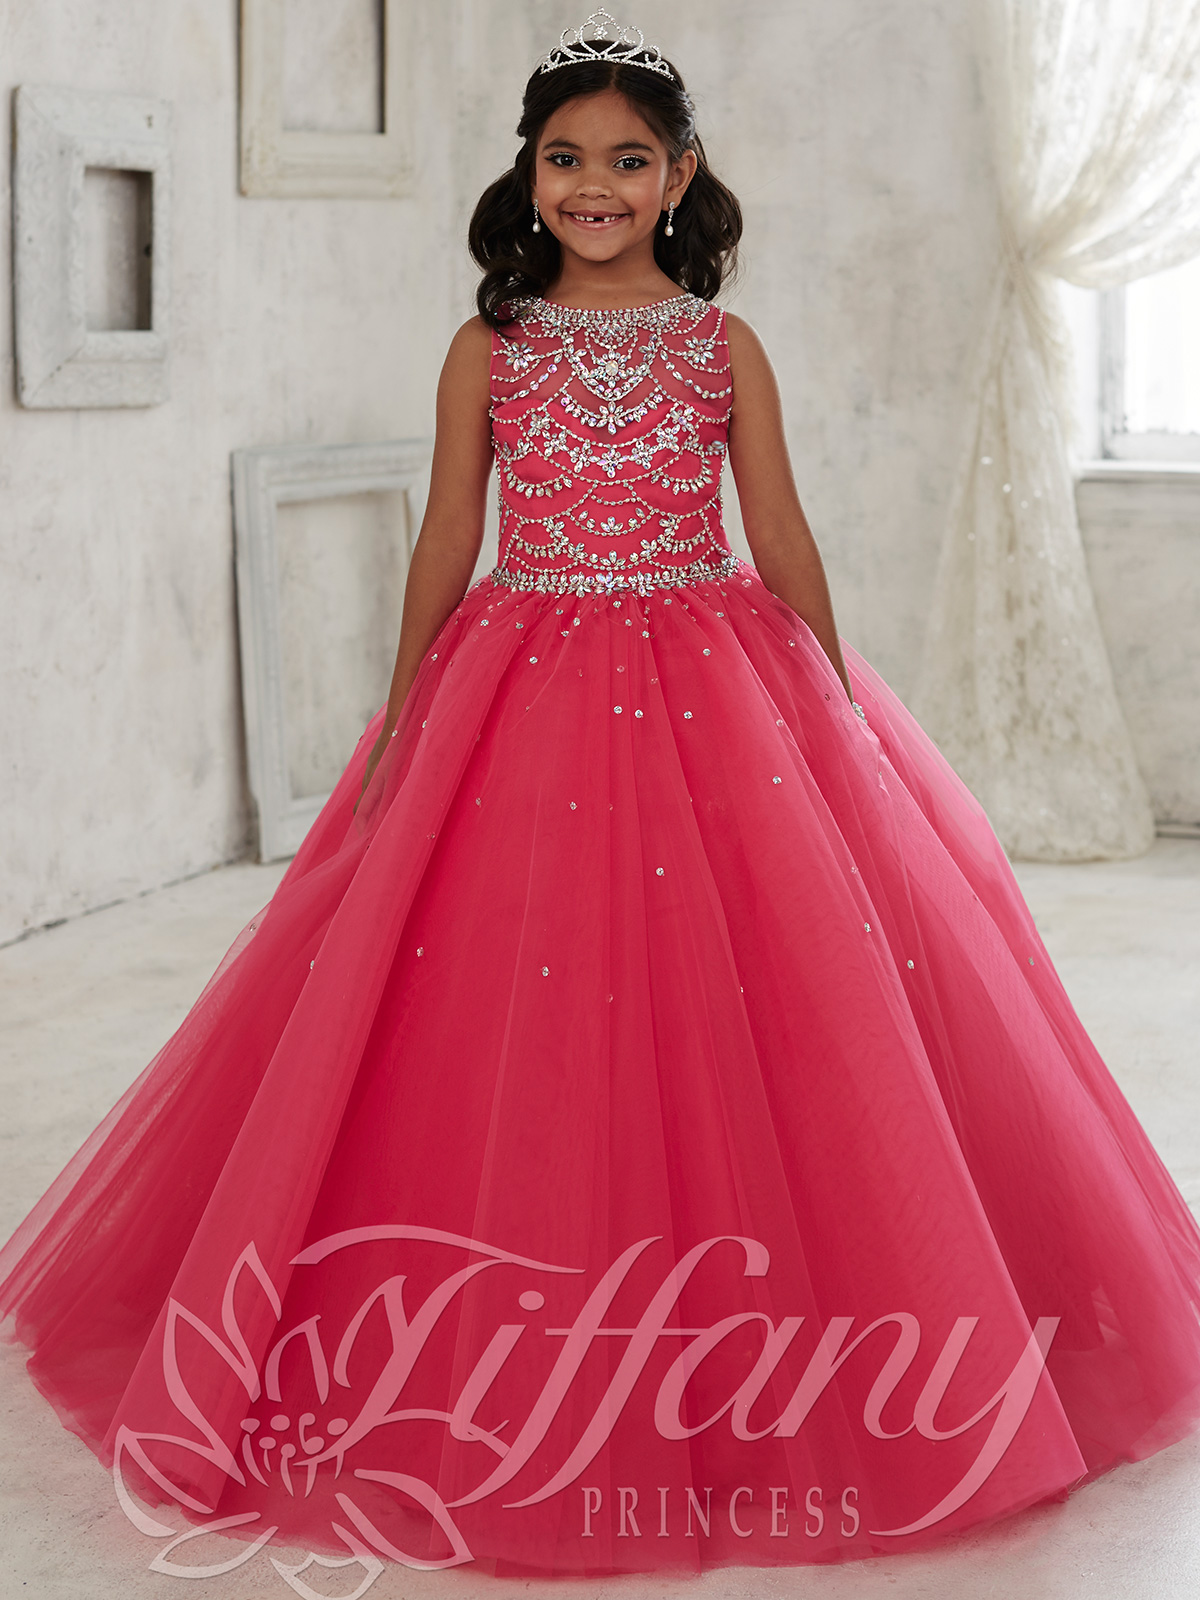 8a59505feb6 Tiffany Princess 13450 High Neckline Girls Pageant Dress ...